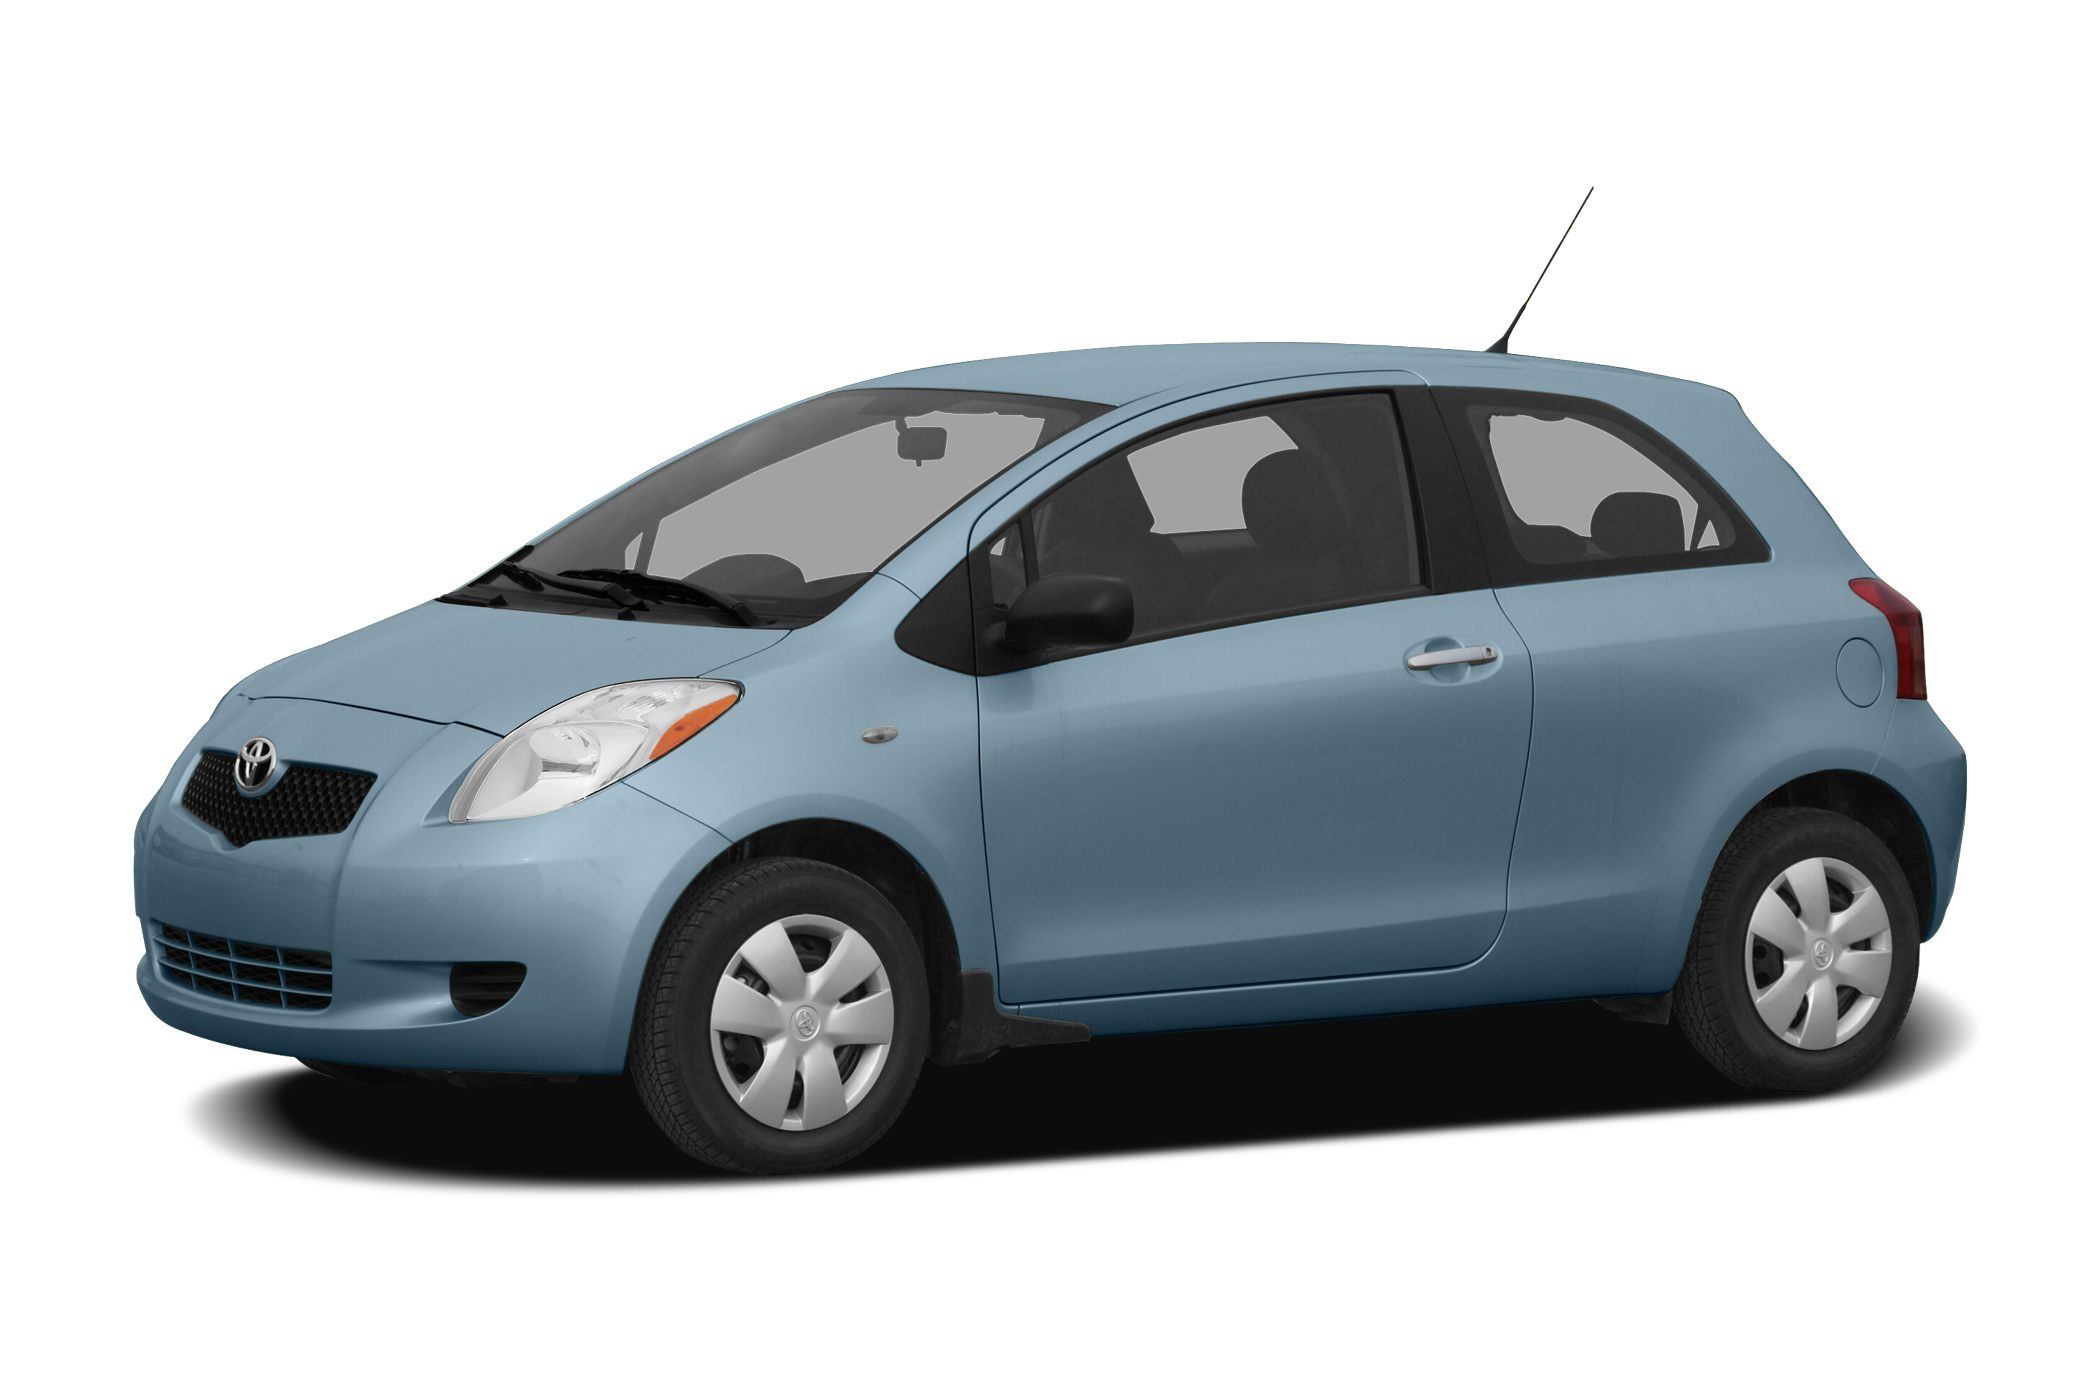 2008 Toyota Yaris Hatchback for sale in Binghamton for $7,999 with 48,000 miles